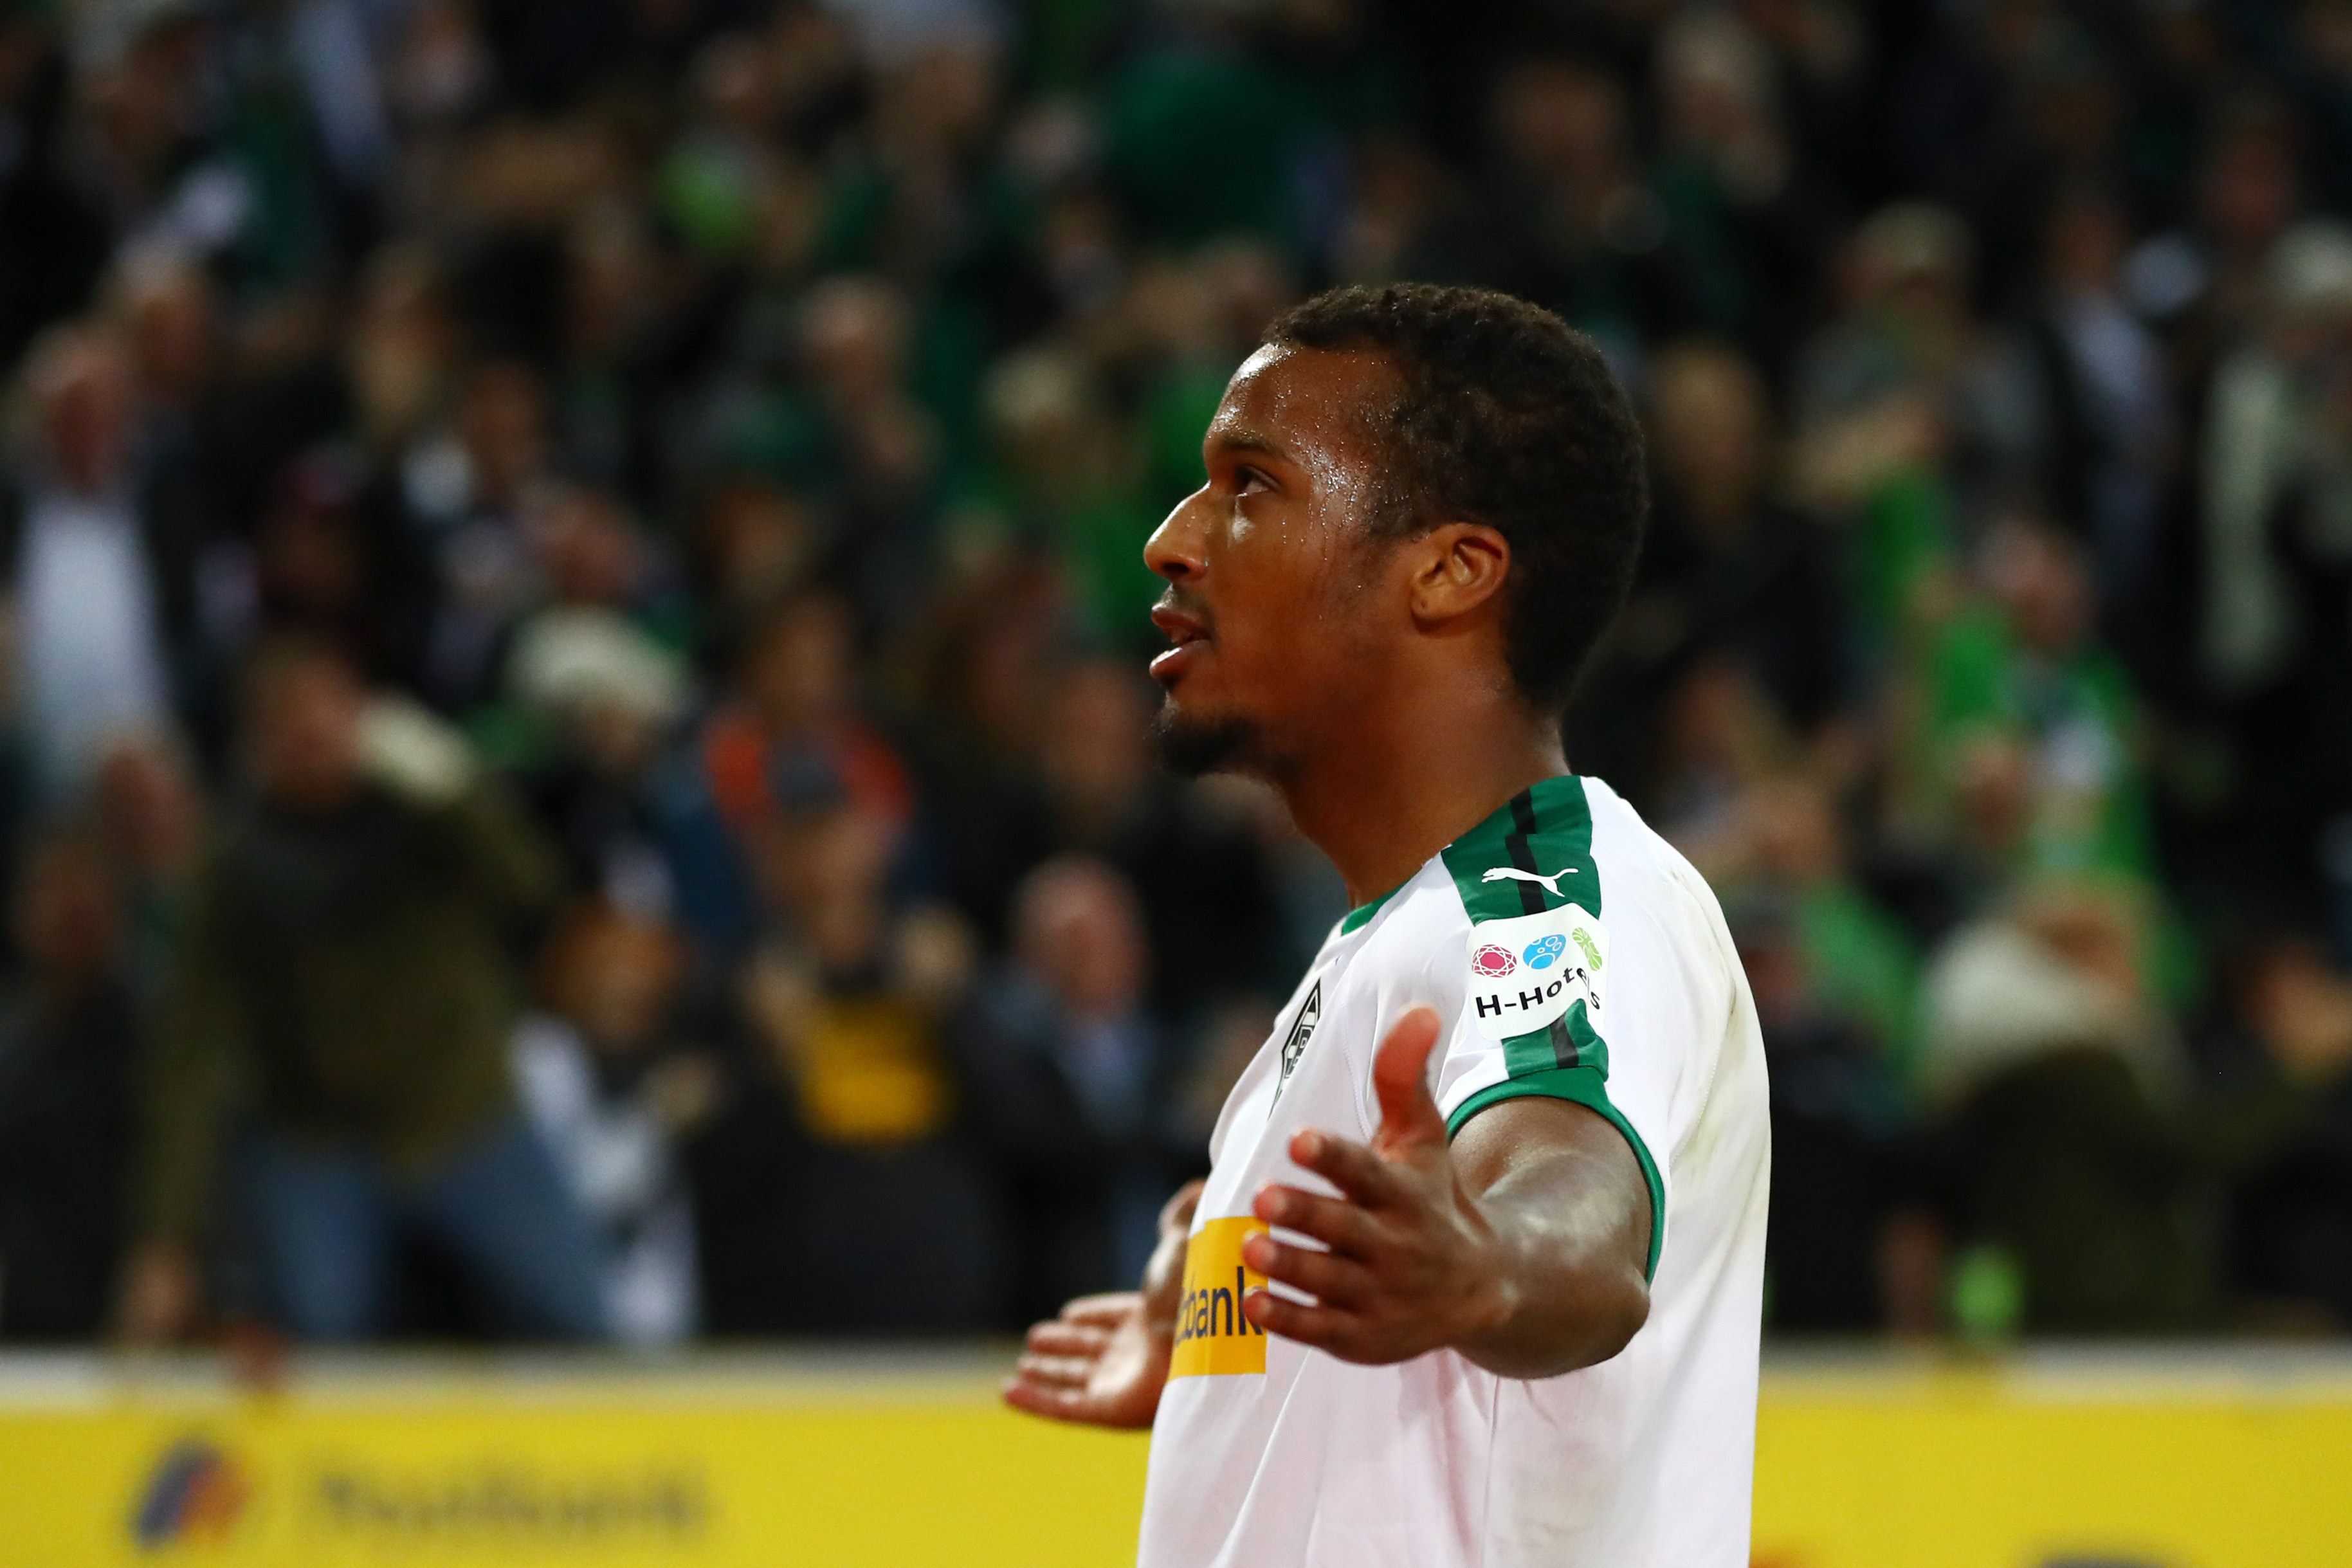 Alassane Plea continue his excellent start to the season. (Photo by Dean Mouhtaropoulos/Bongarts/Getty Images)